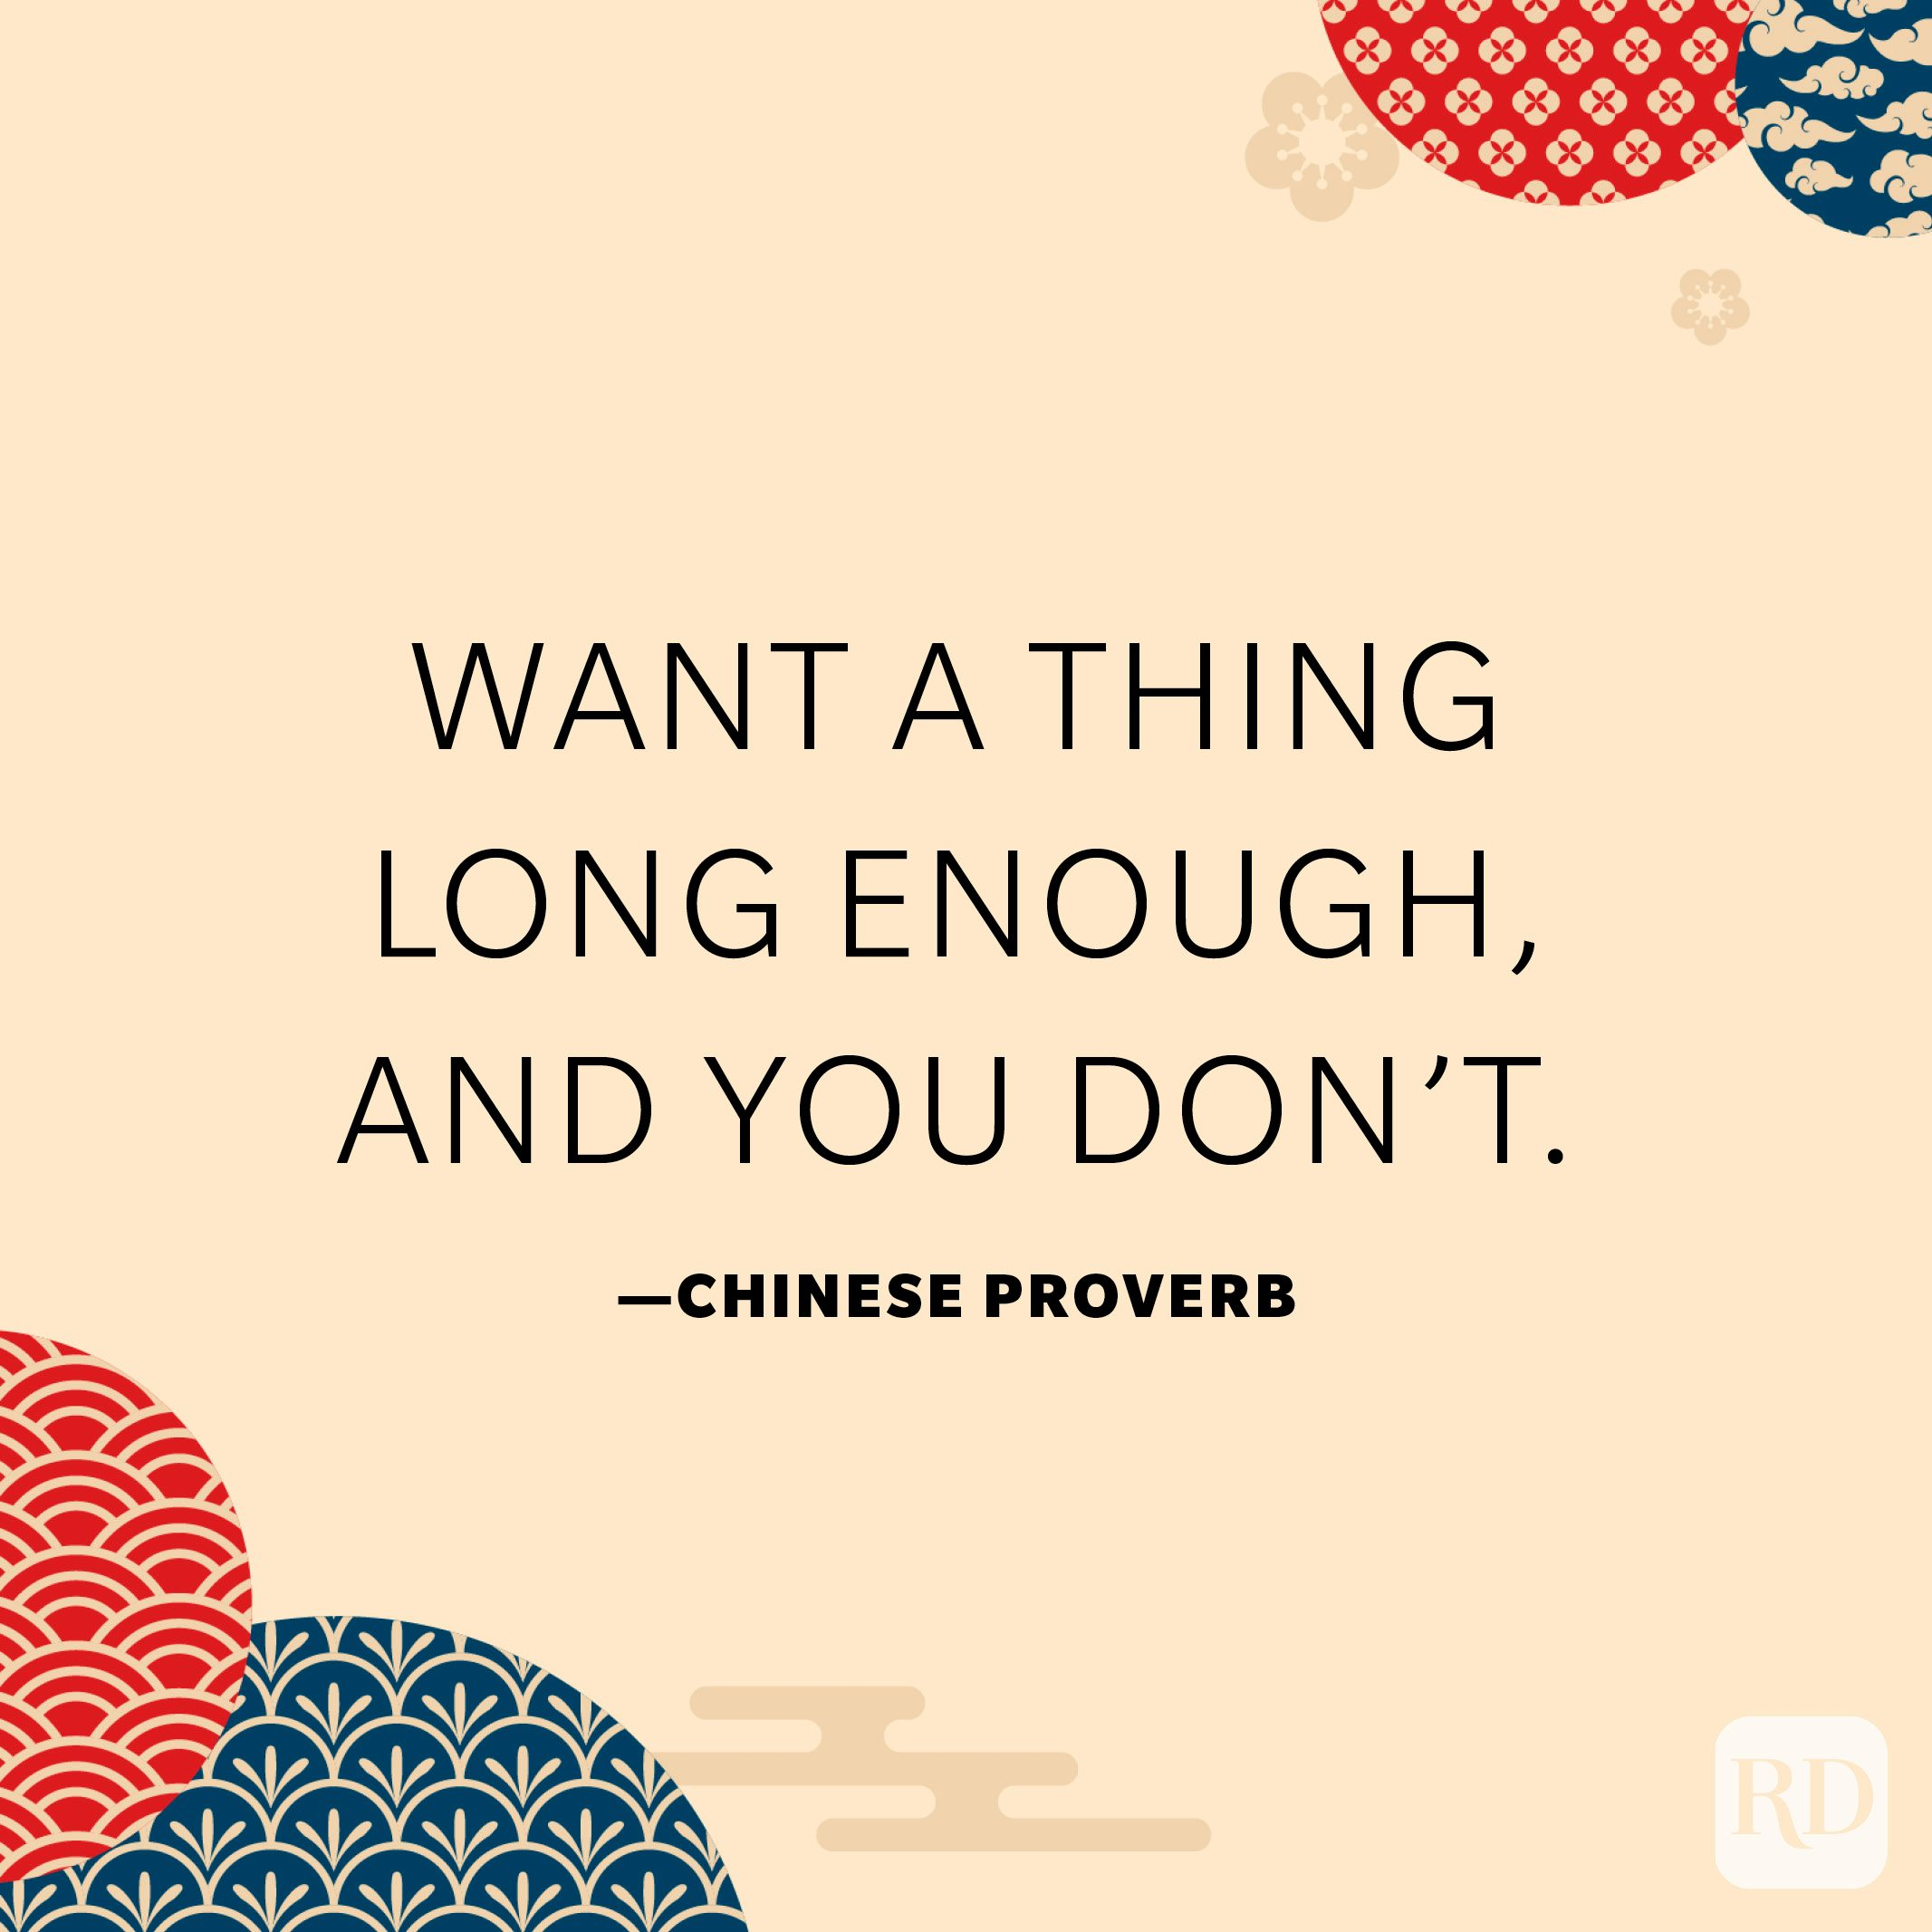 Want a thing long enough, and you don't.